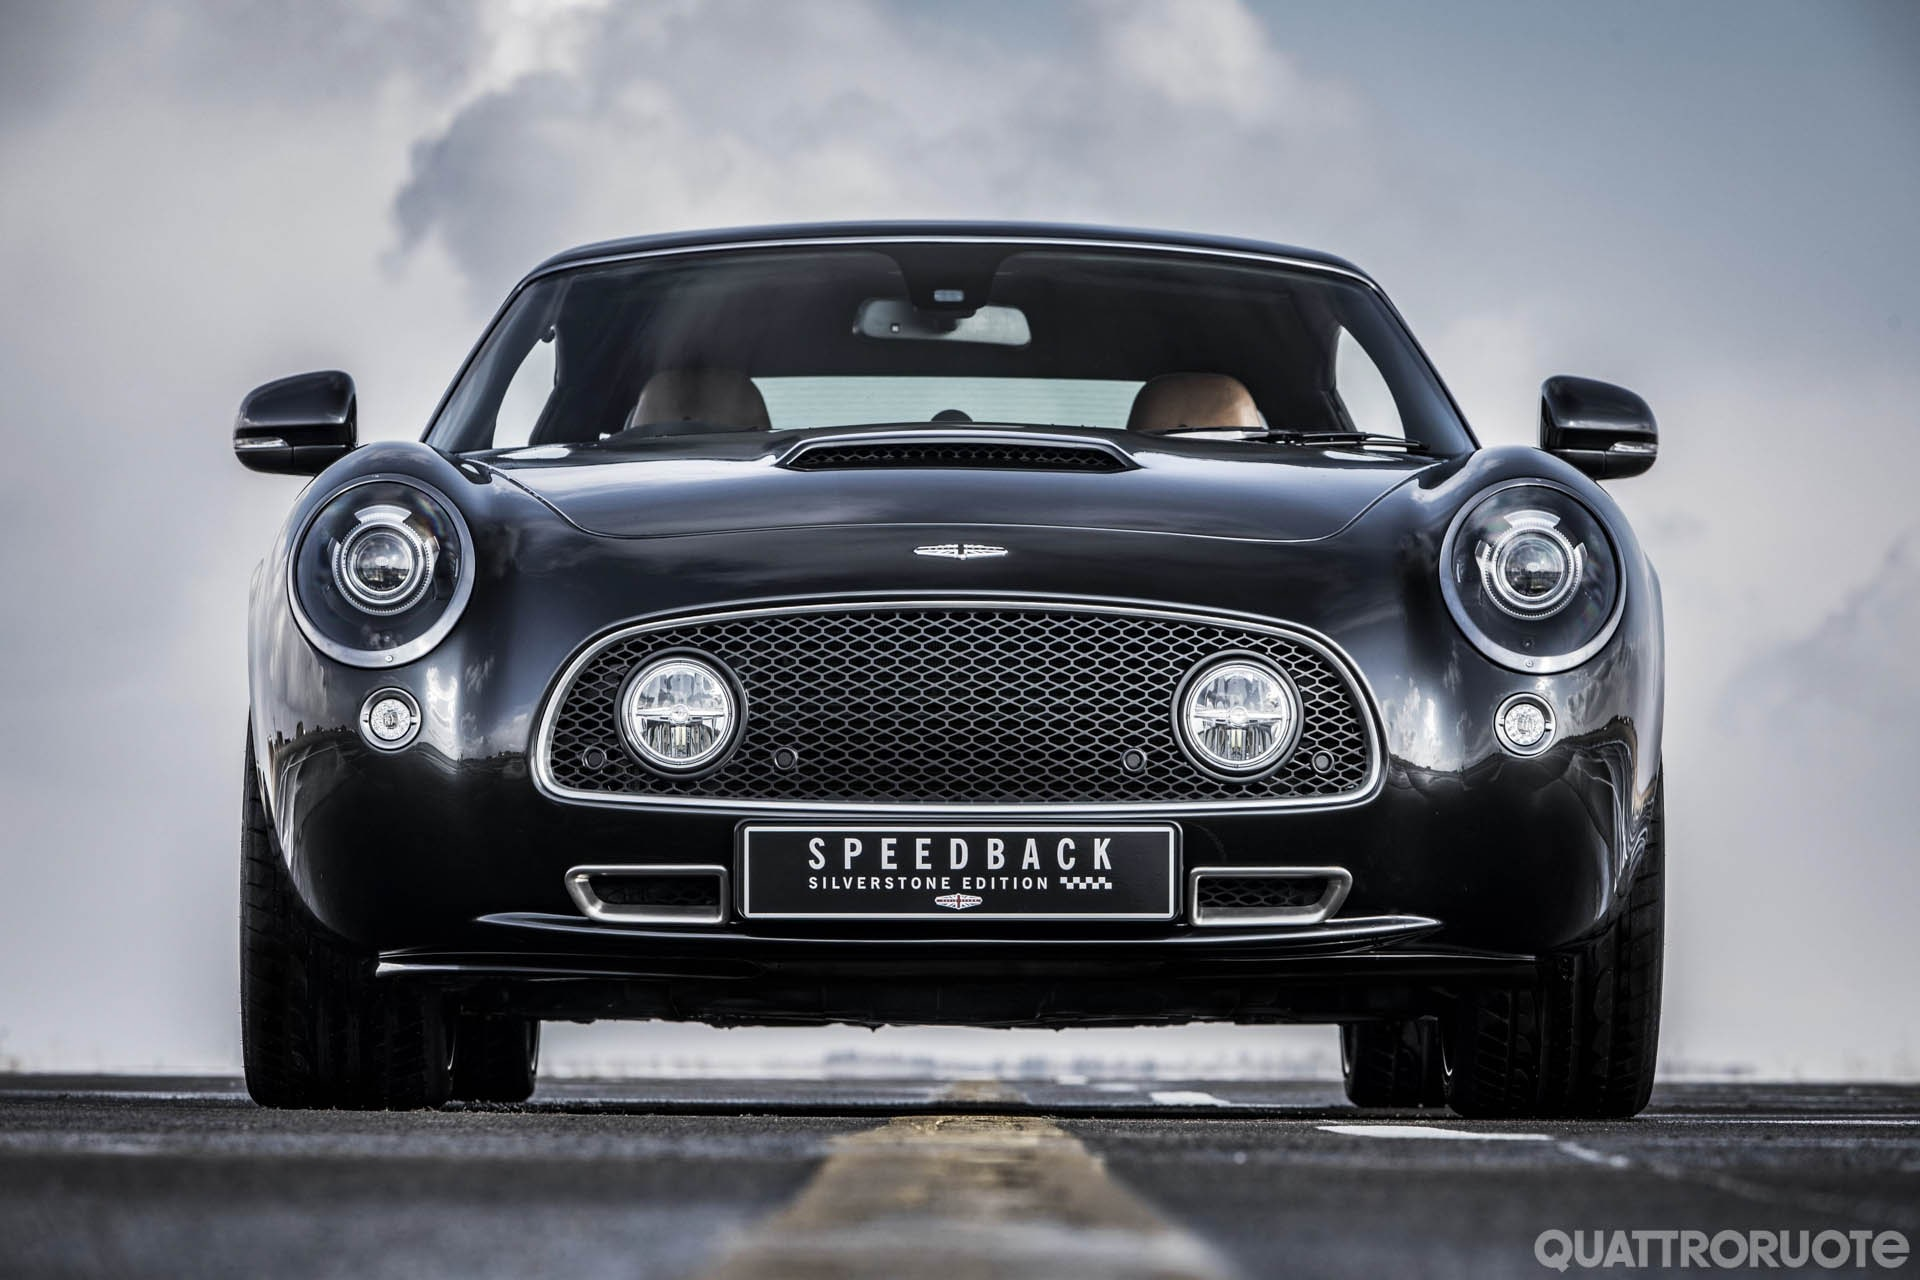 David Brown Speedback Silverstone Edition (2018)